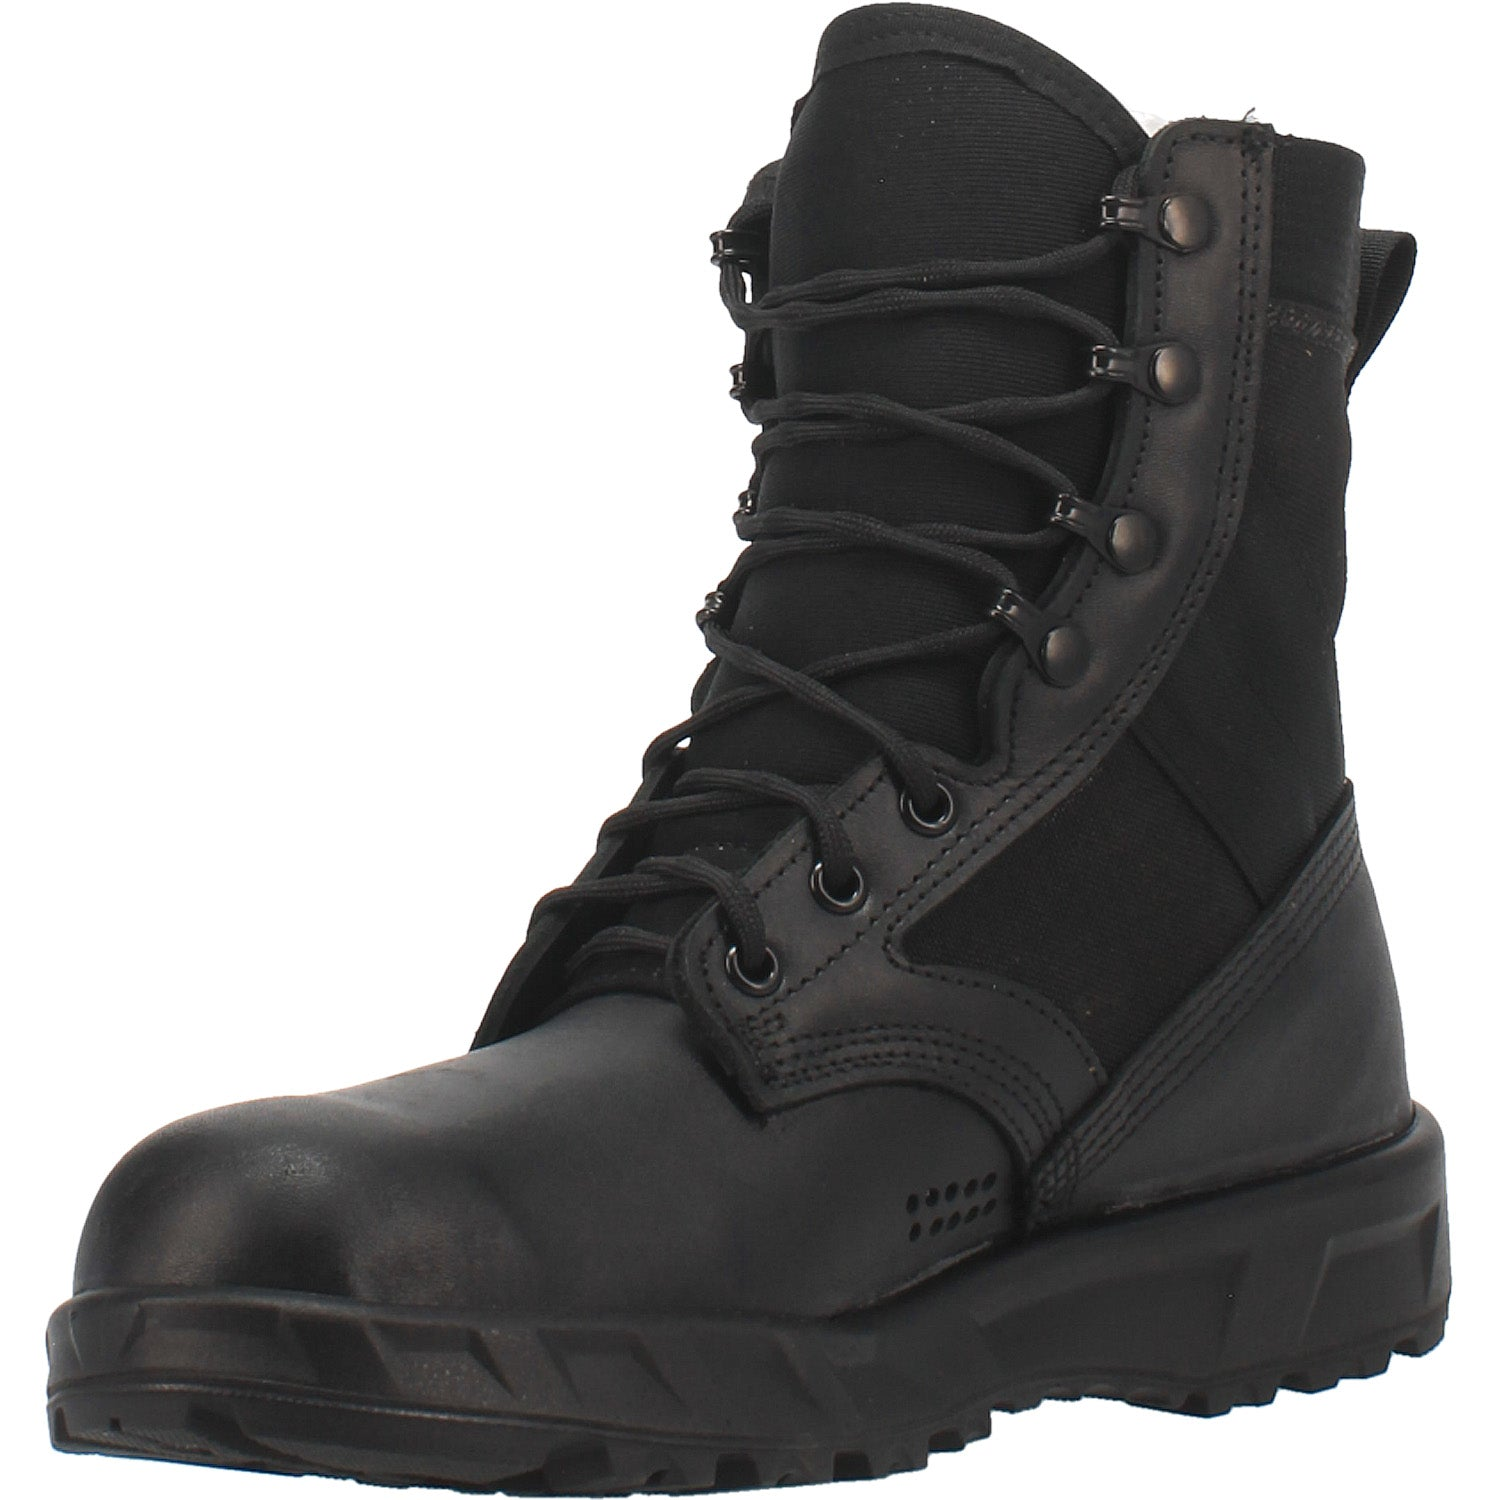 T2 Ultra Light Hot Weather Combat Boot 27986663145514